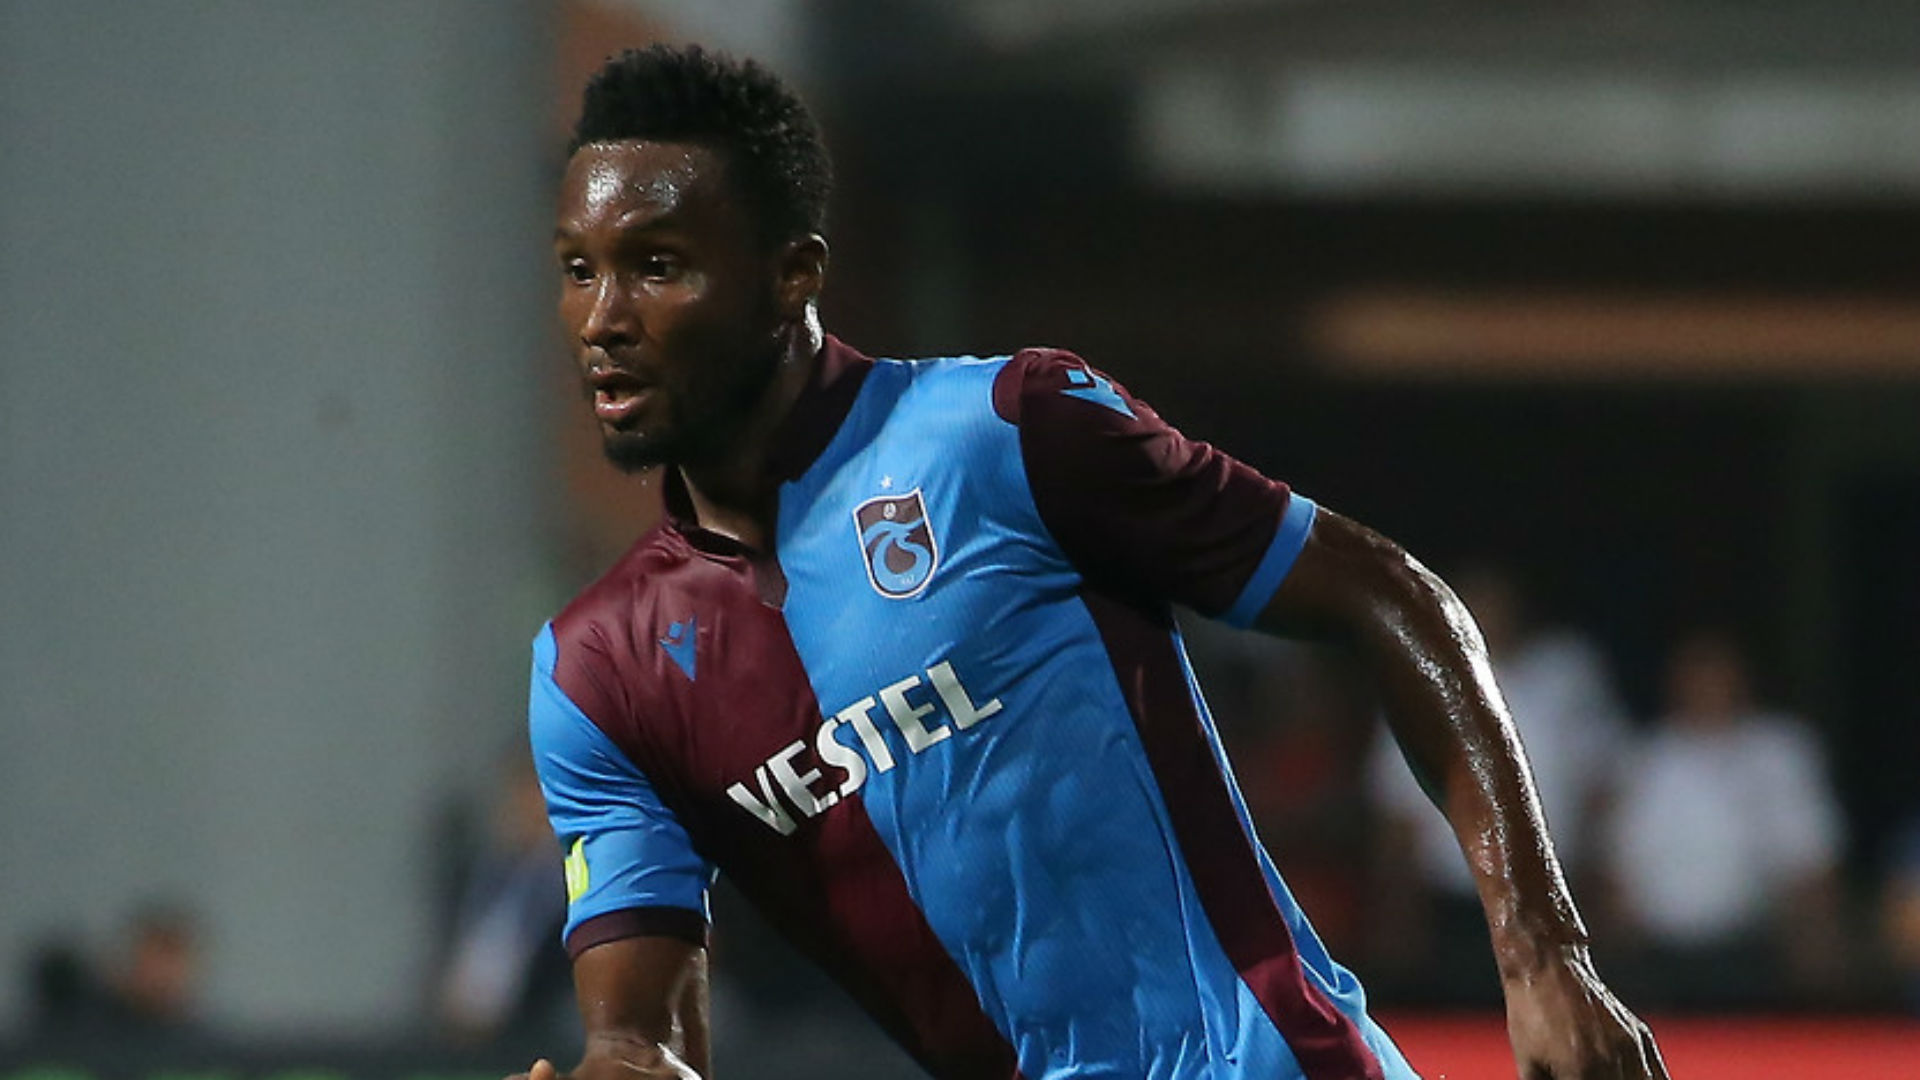 Mikel: Former Chelsea and Nigeria star open to England return